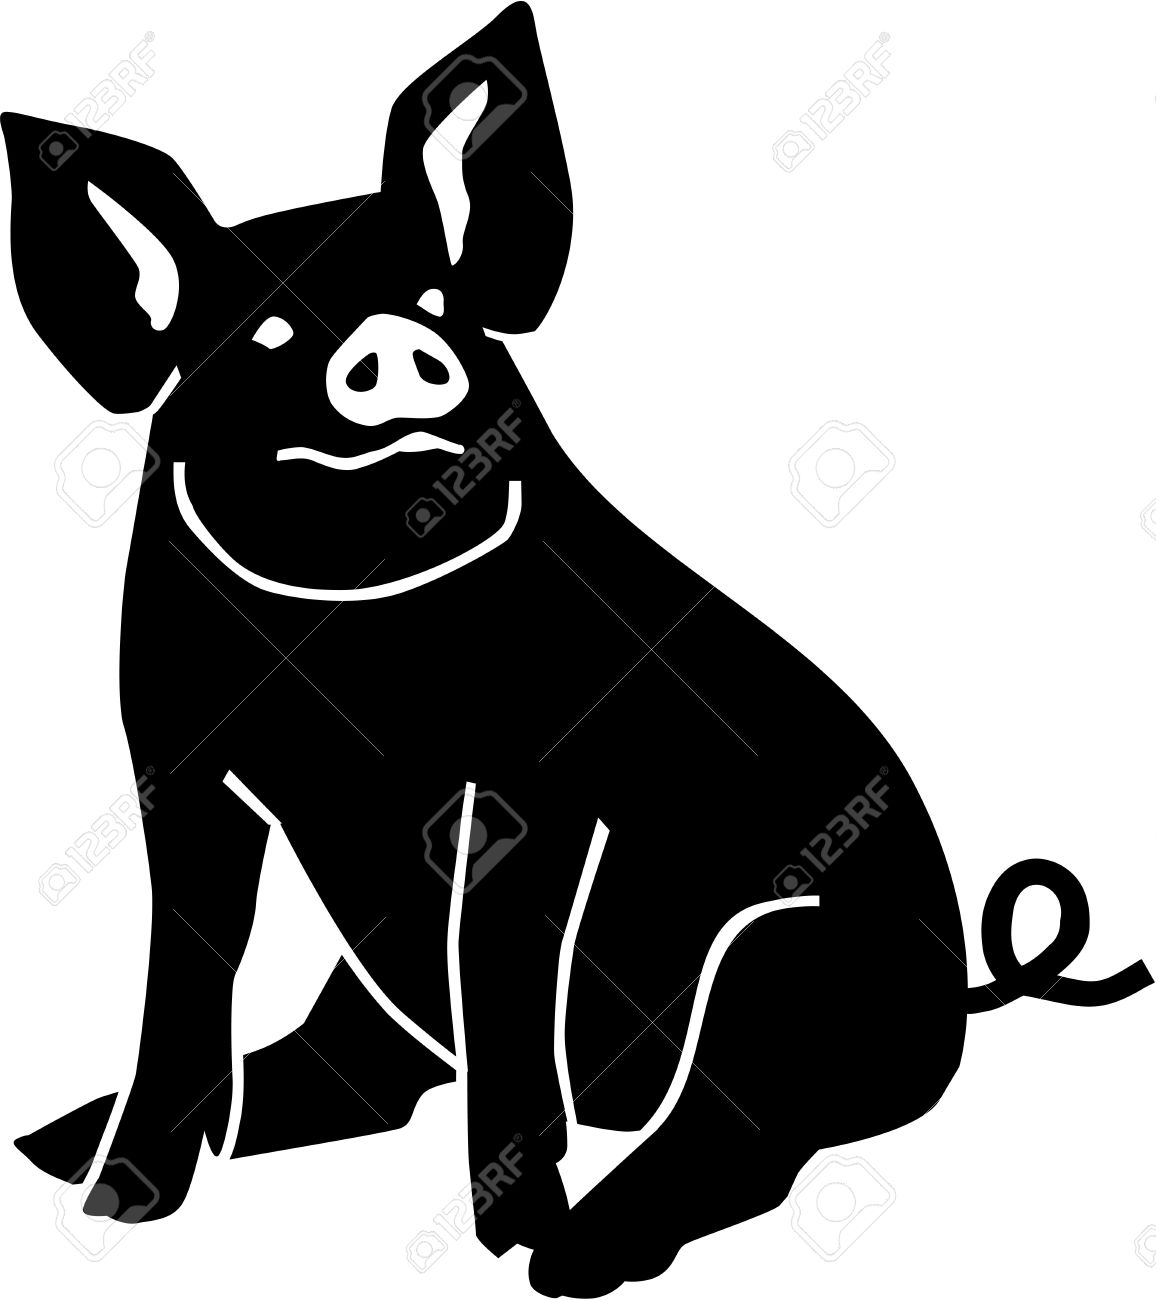 pig sitting royalty free cliparts vectors and stock illustration rh 123rf com pig vector free pig vector art free